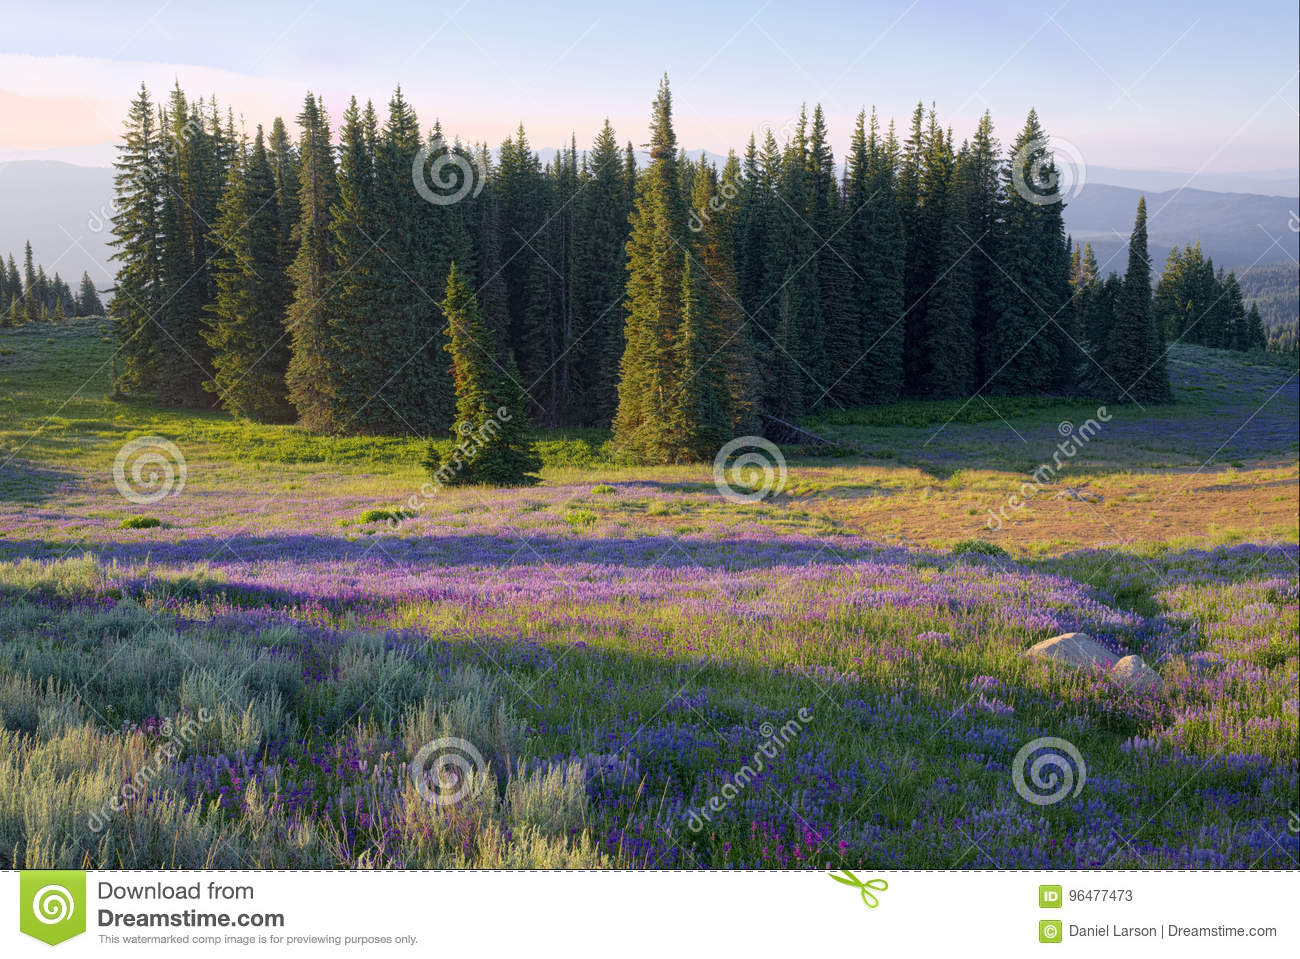 Meadow of wildflowers in Council Mountains